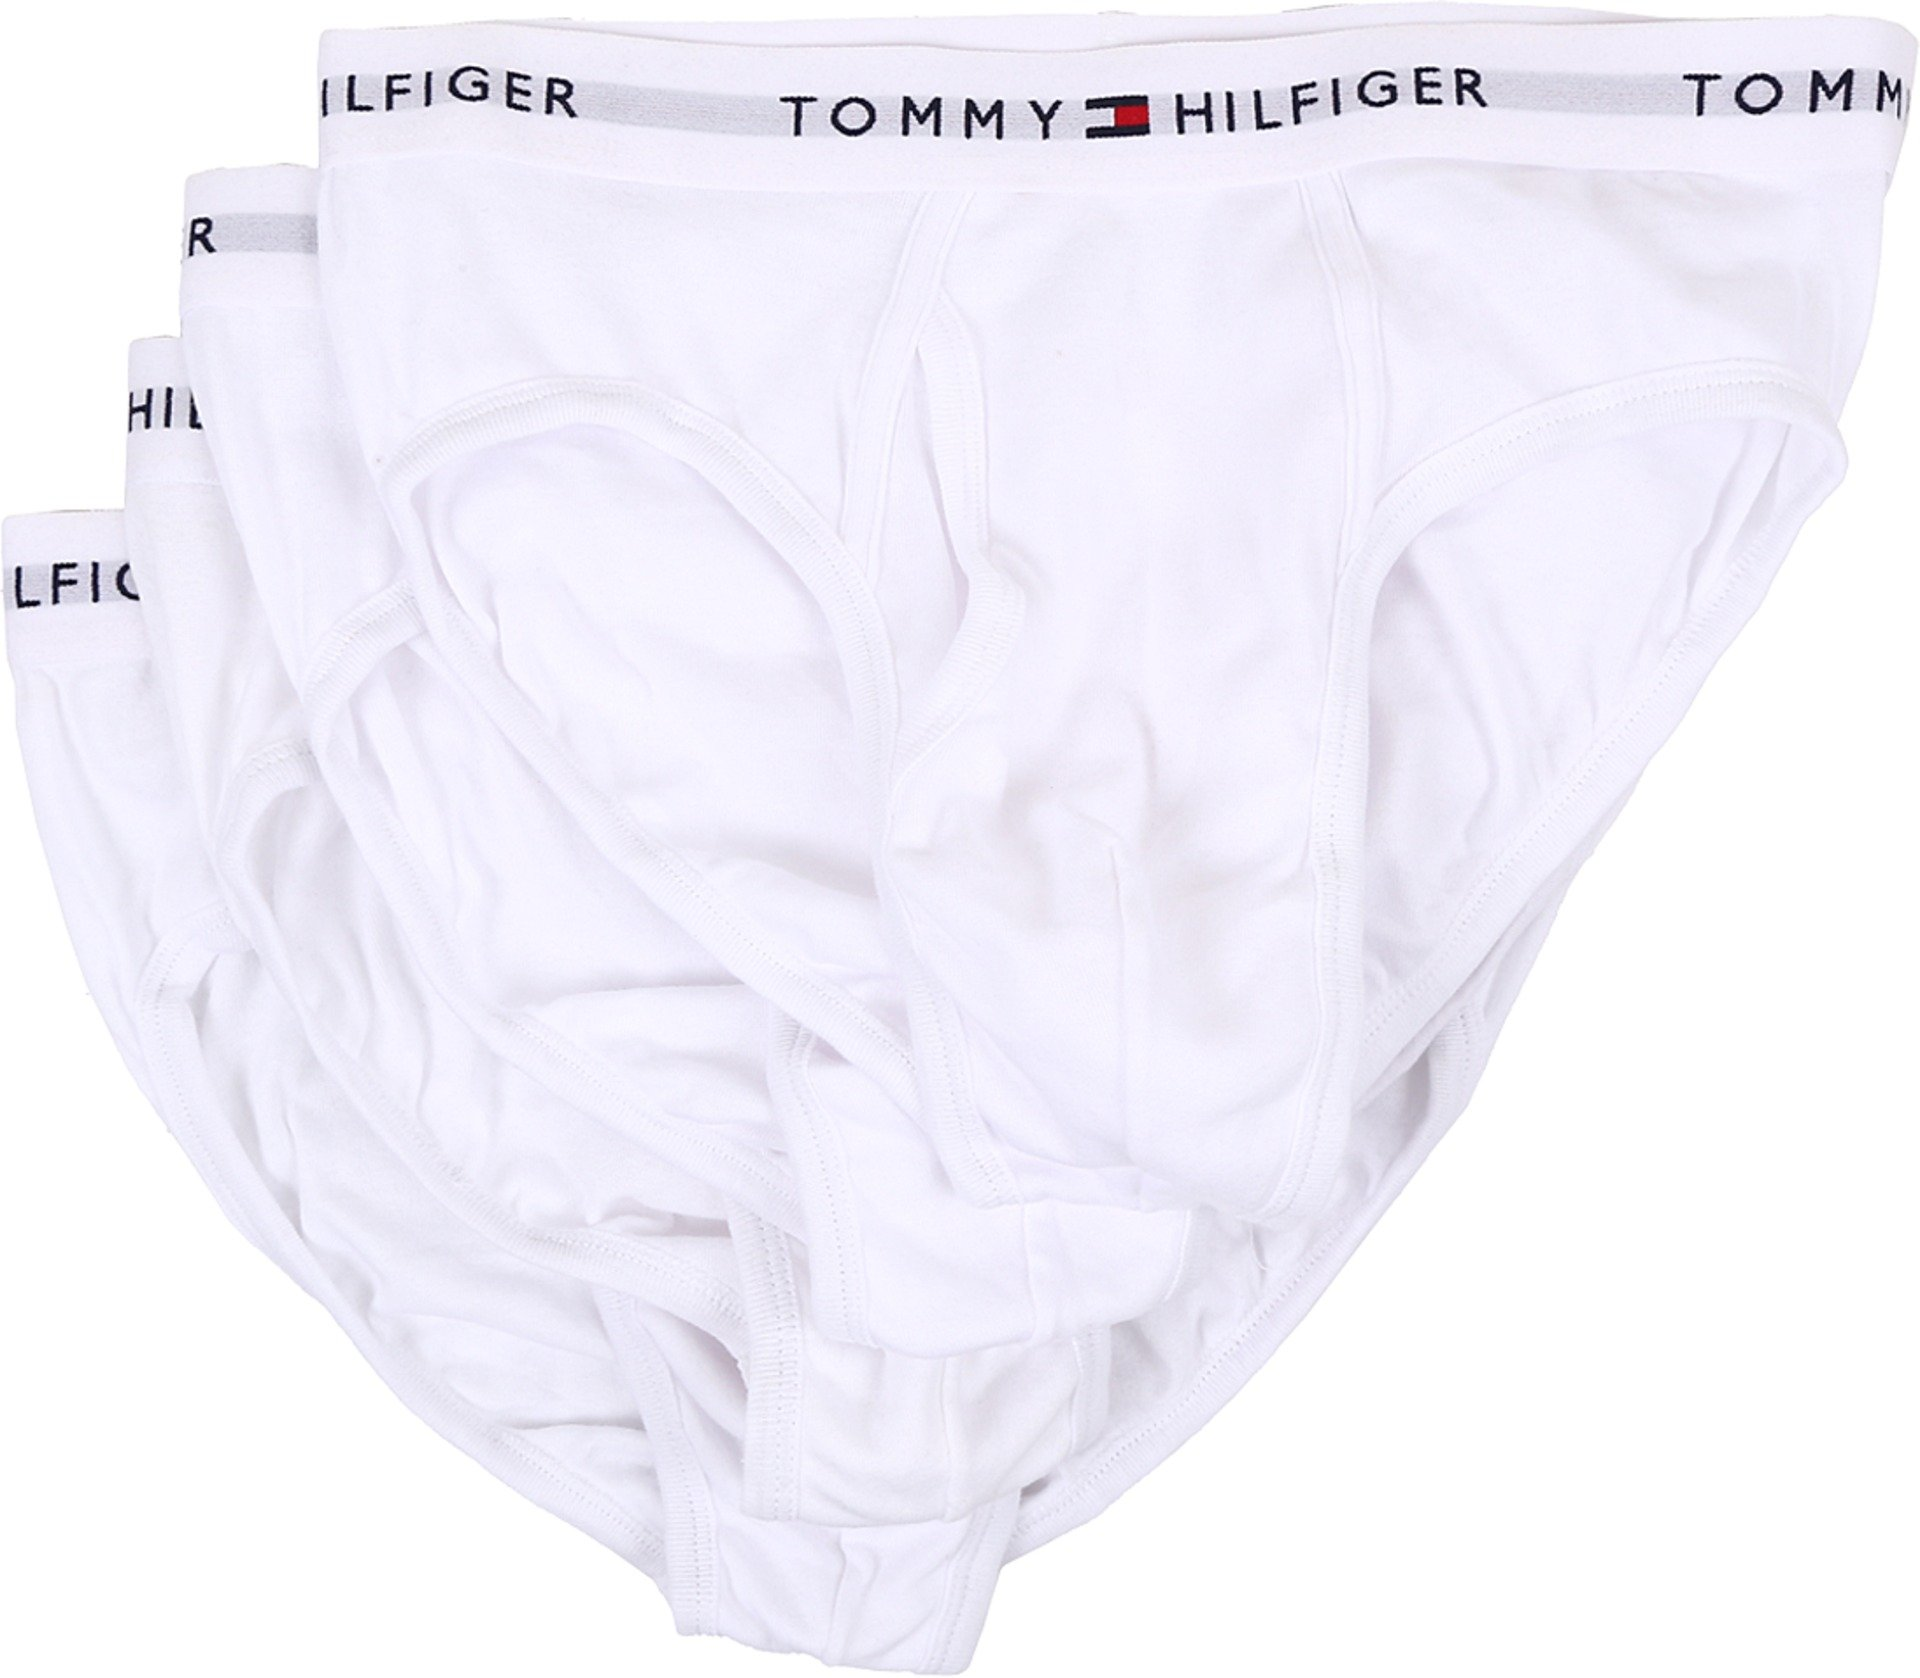 Tommy Hilfiger Men's 4-Pack Cotton Brief, White, X-Large by Tommy Hilfiger